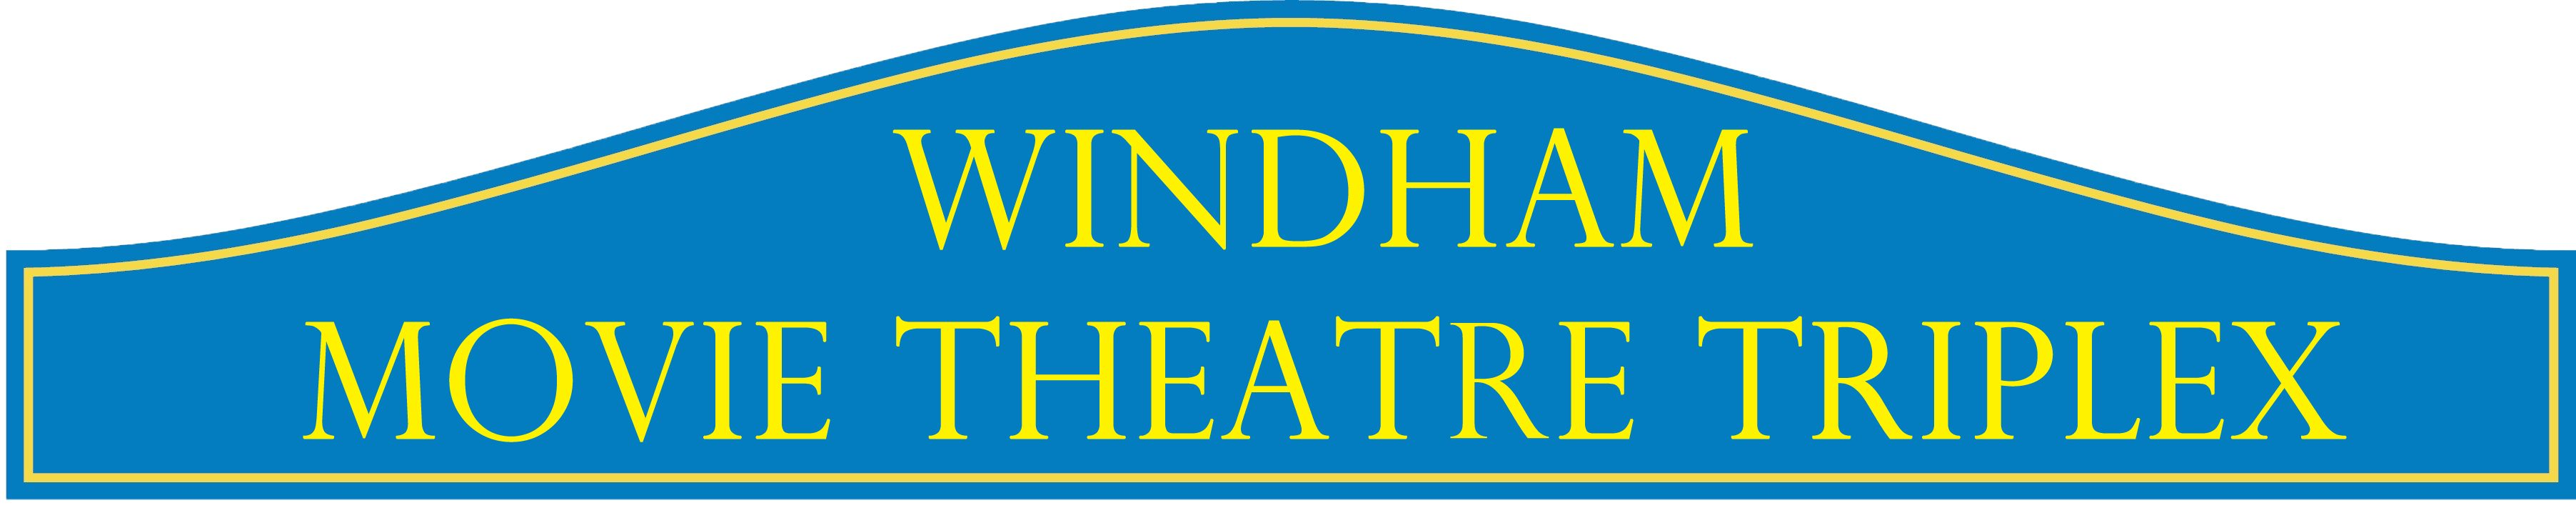 Windham Theatre, Windham NY